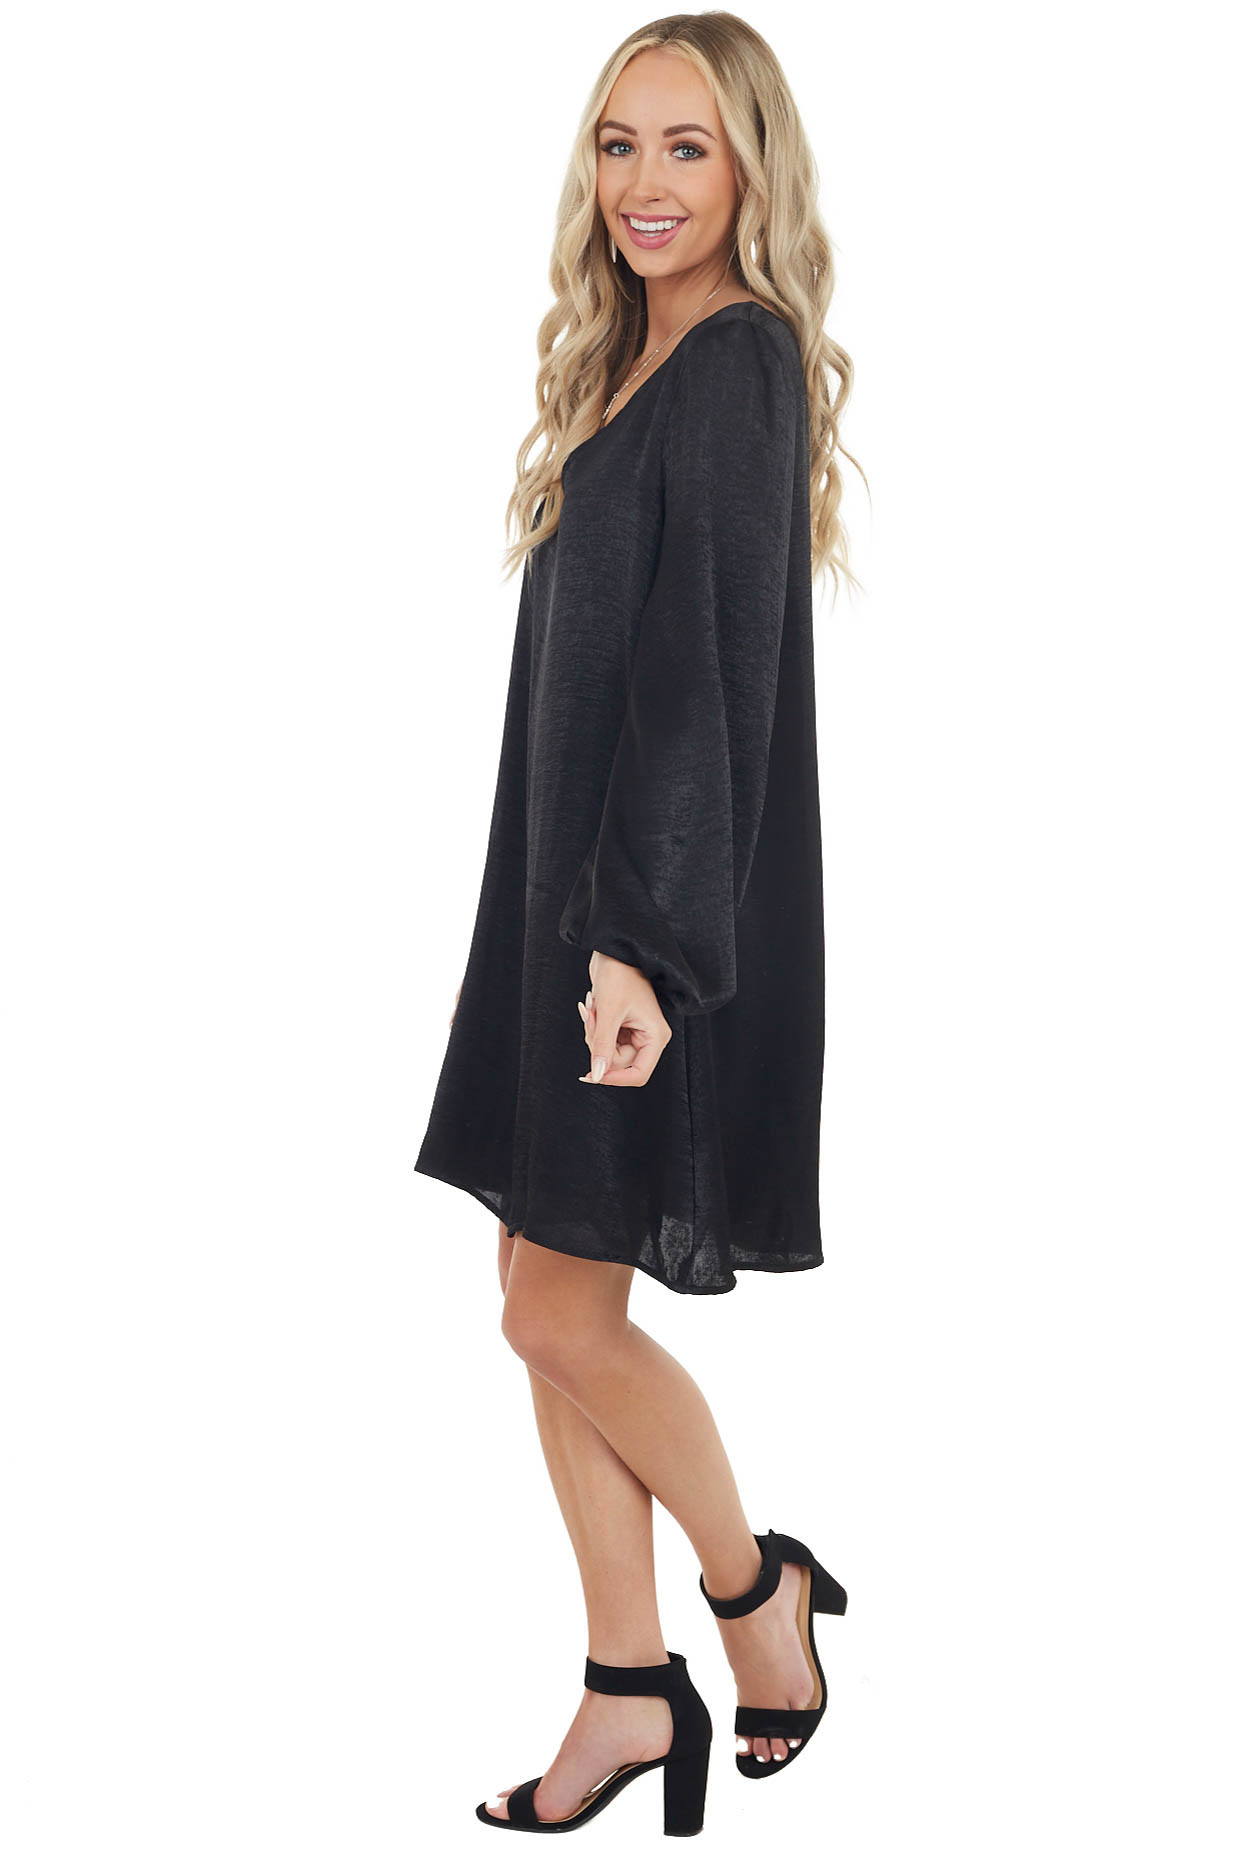 Black Satin Relaxed Fit Dress with Long Bubble Sleeves